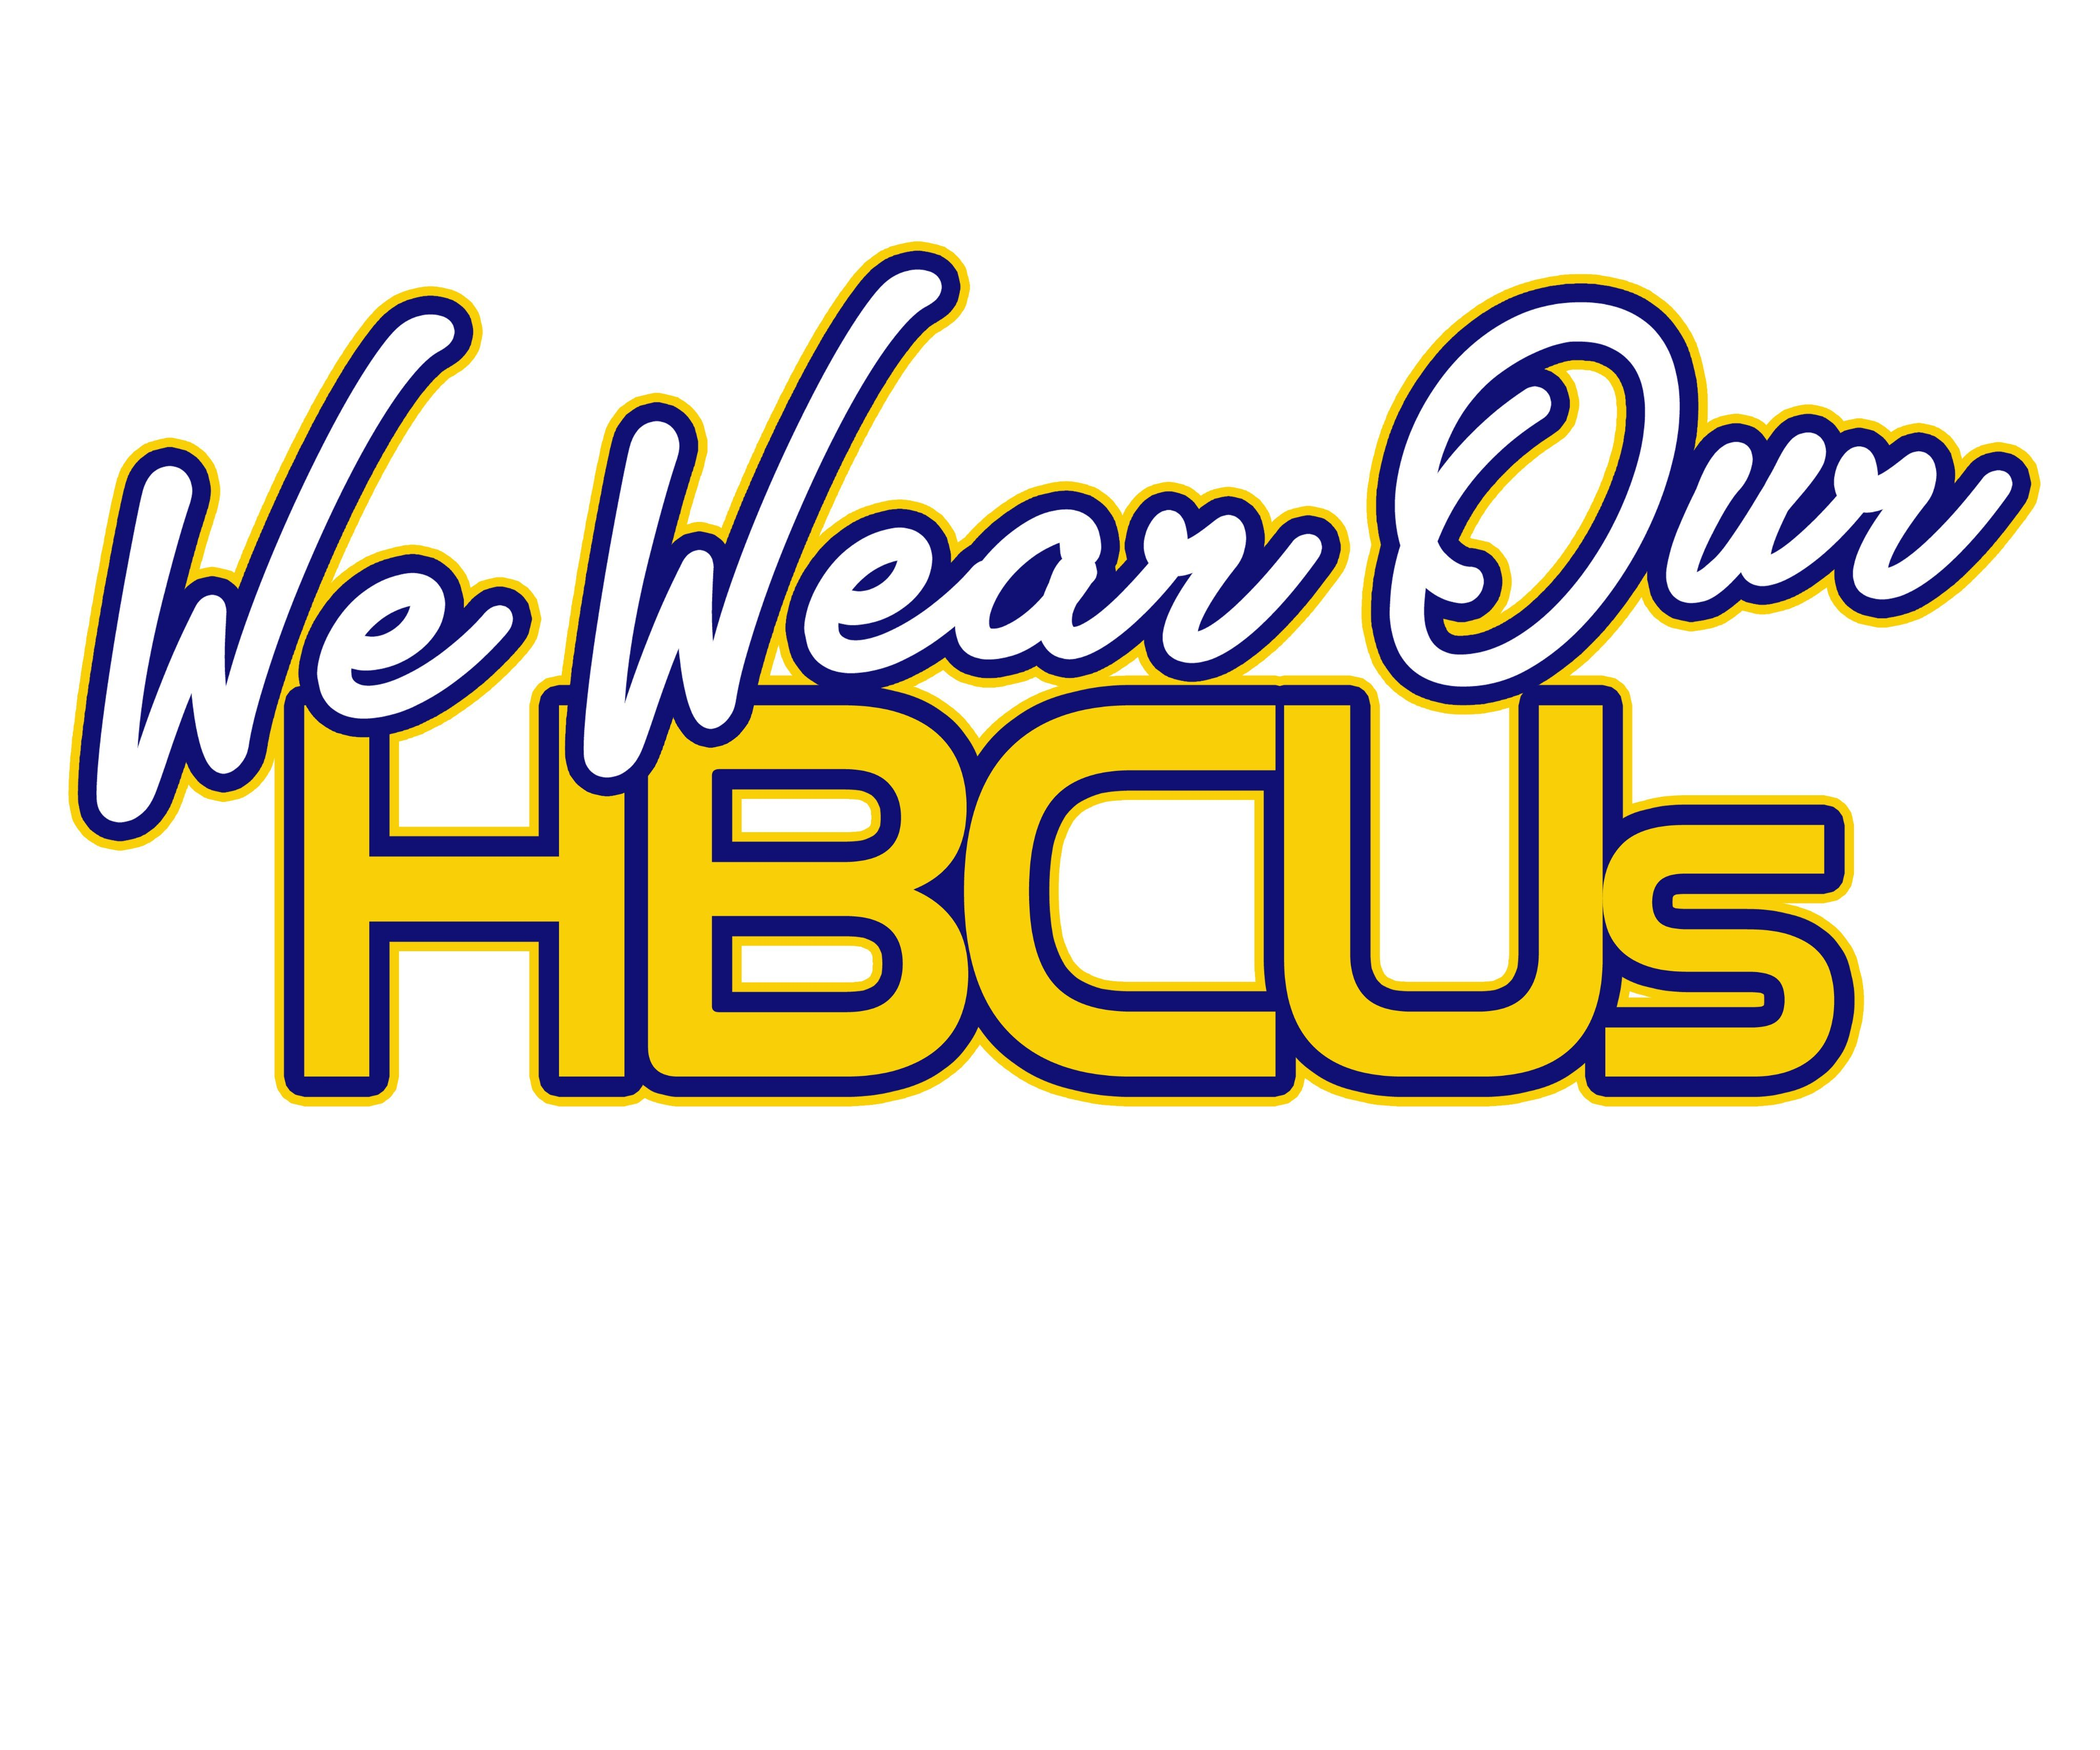 We Wear Our HBCUs